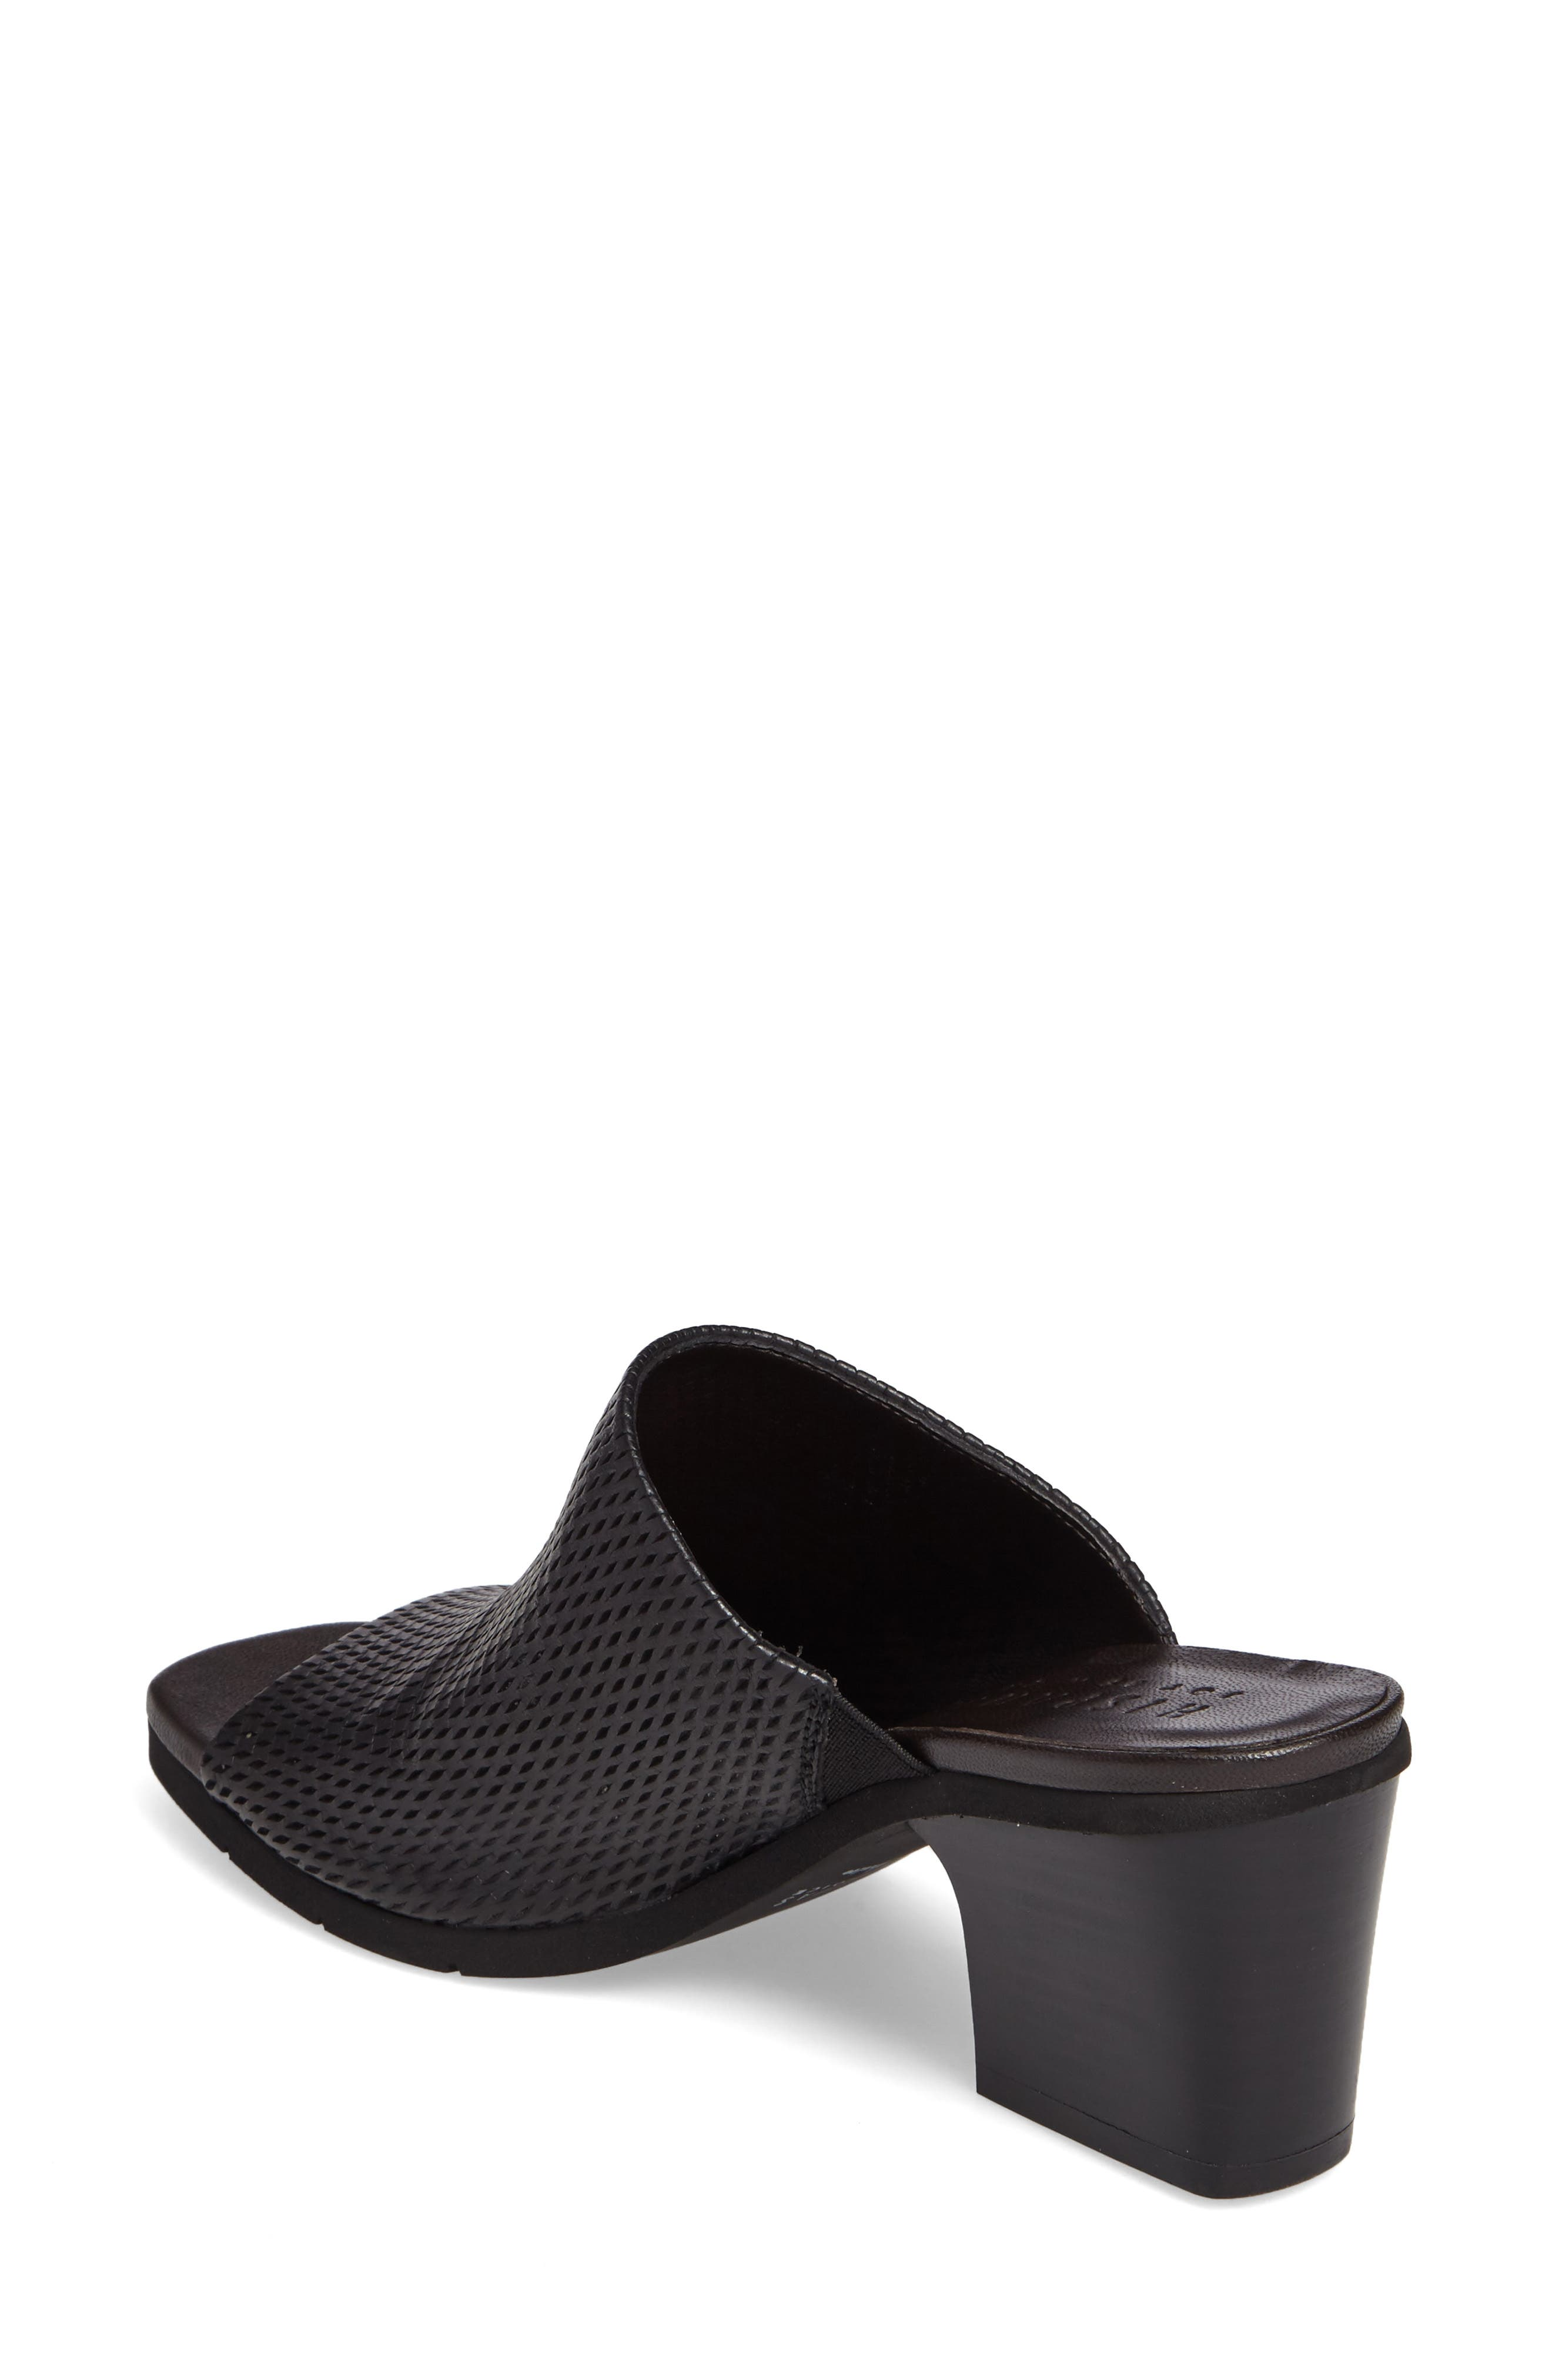 Udora Perforated Mule,                             Alternate thumbnail 2, color,                             001